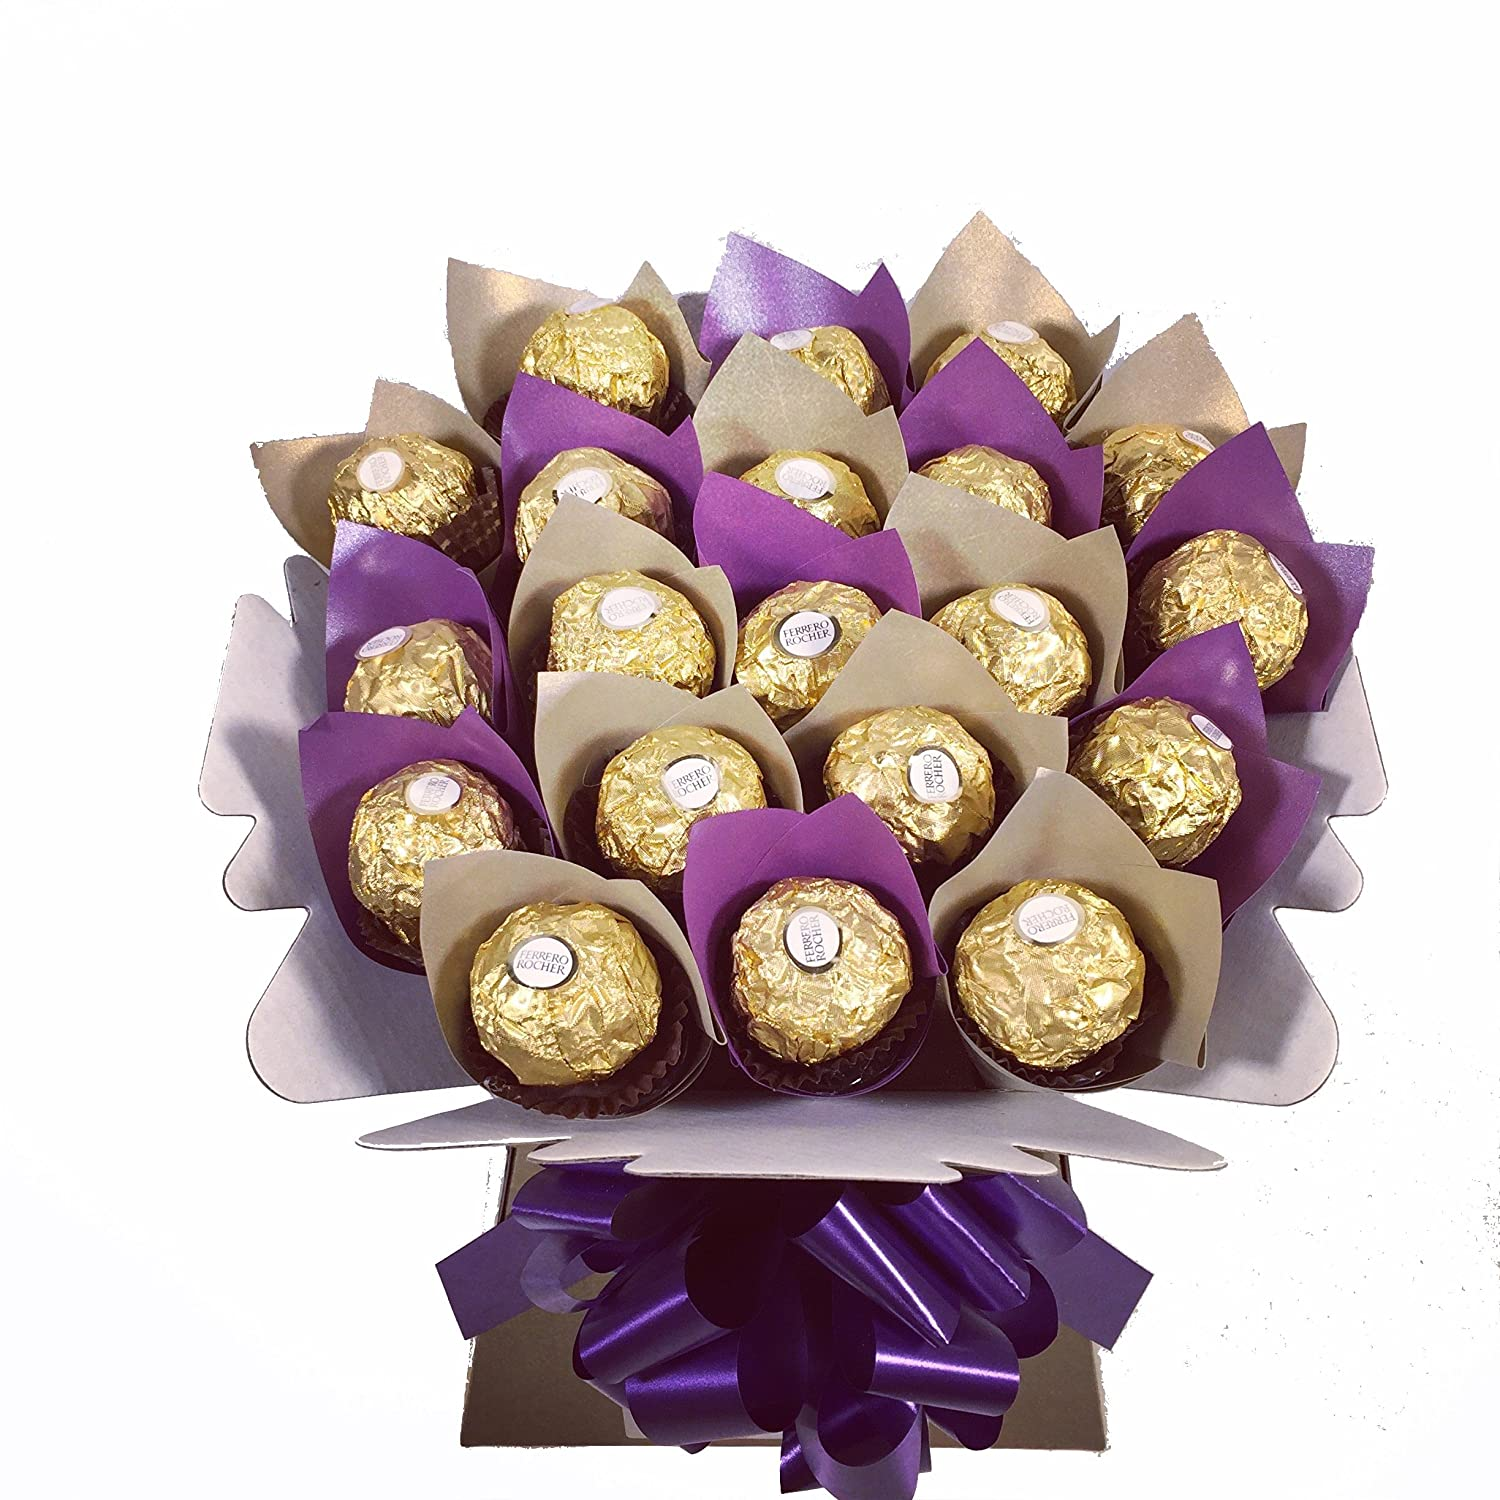 Amazon ferrero rocher 20 chocolate bouquet sweet hamper tree amazon ferrero rocher 20 chocolate bouquet sweet hamper tree explosion grocery gourmet food izmirmasajfo